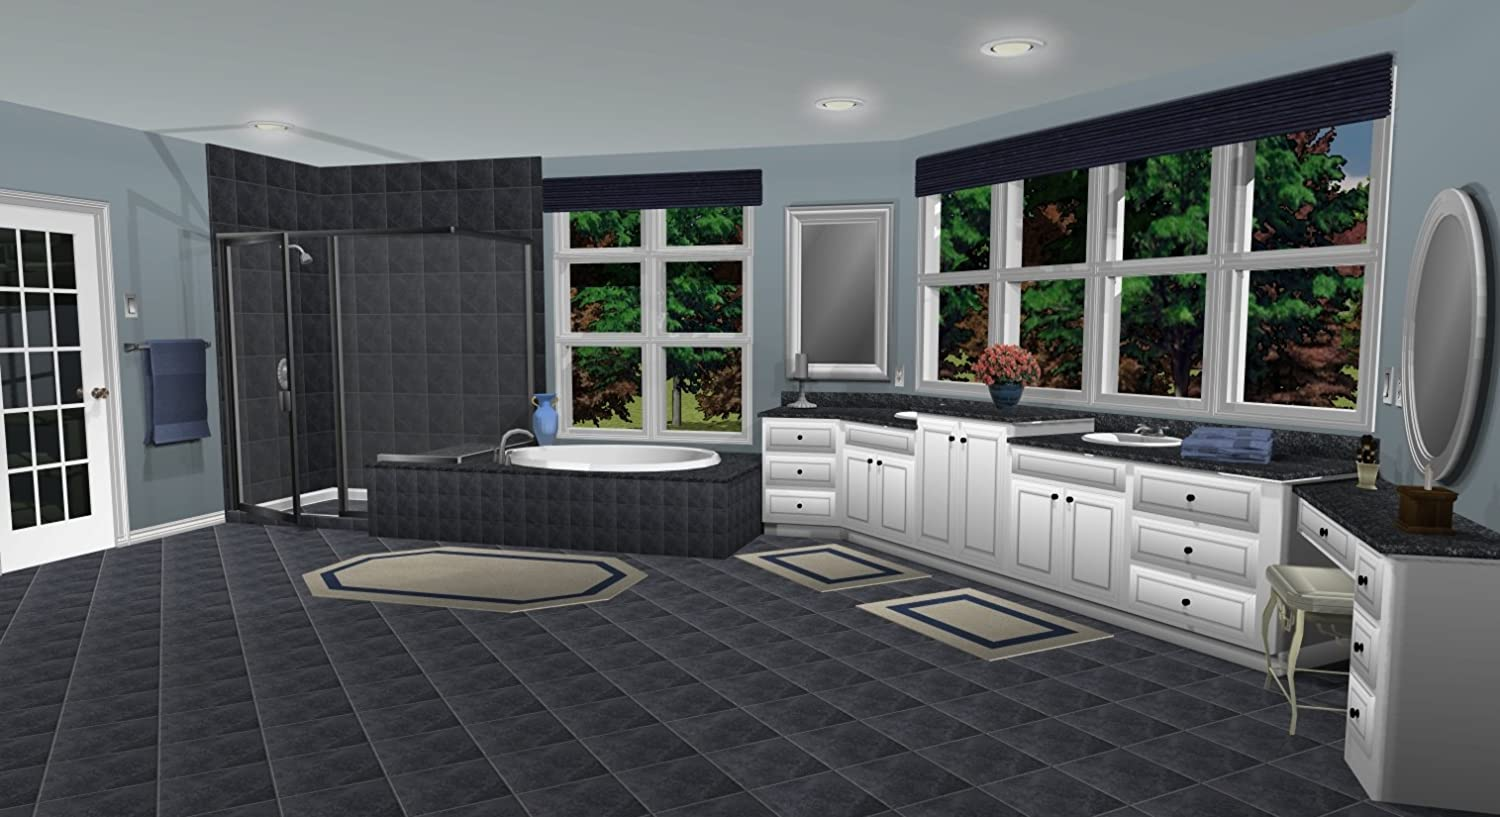 _sl1500_ punch home design edepremcom home design studio pro